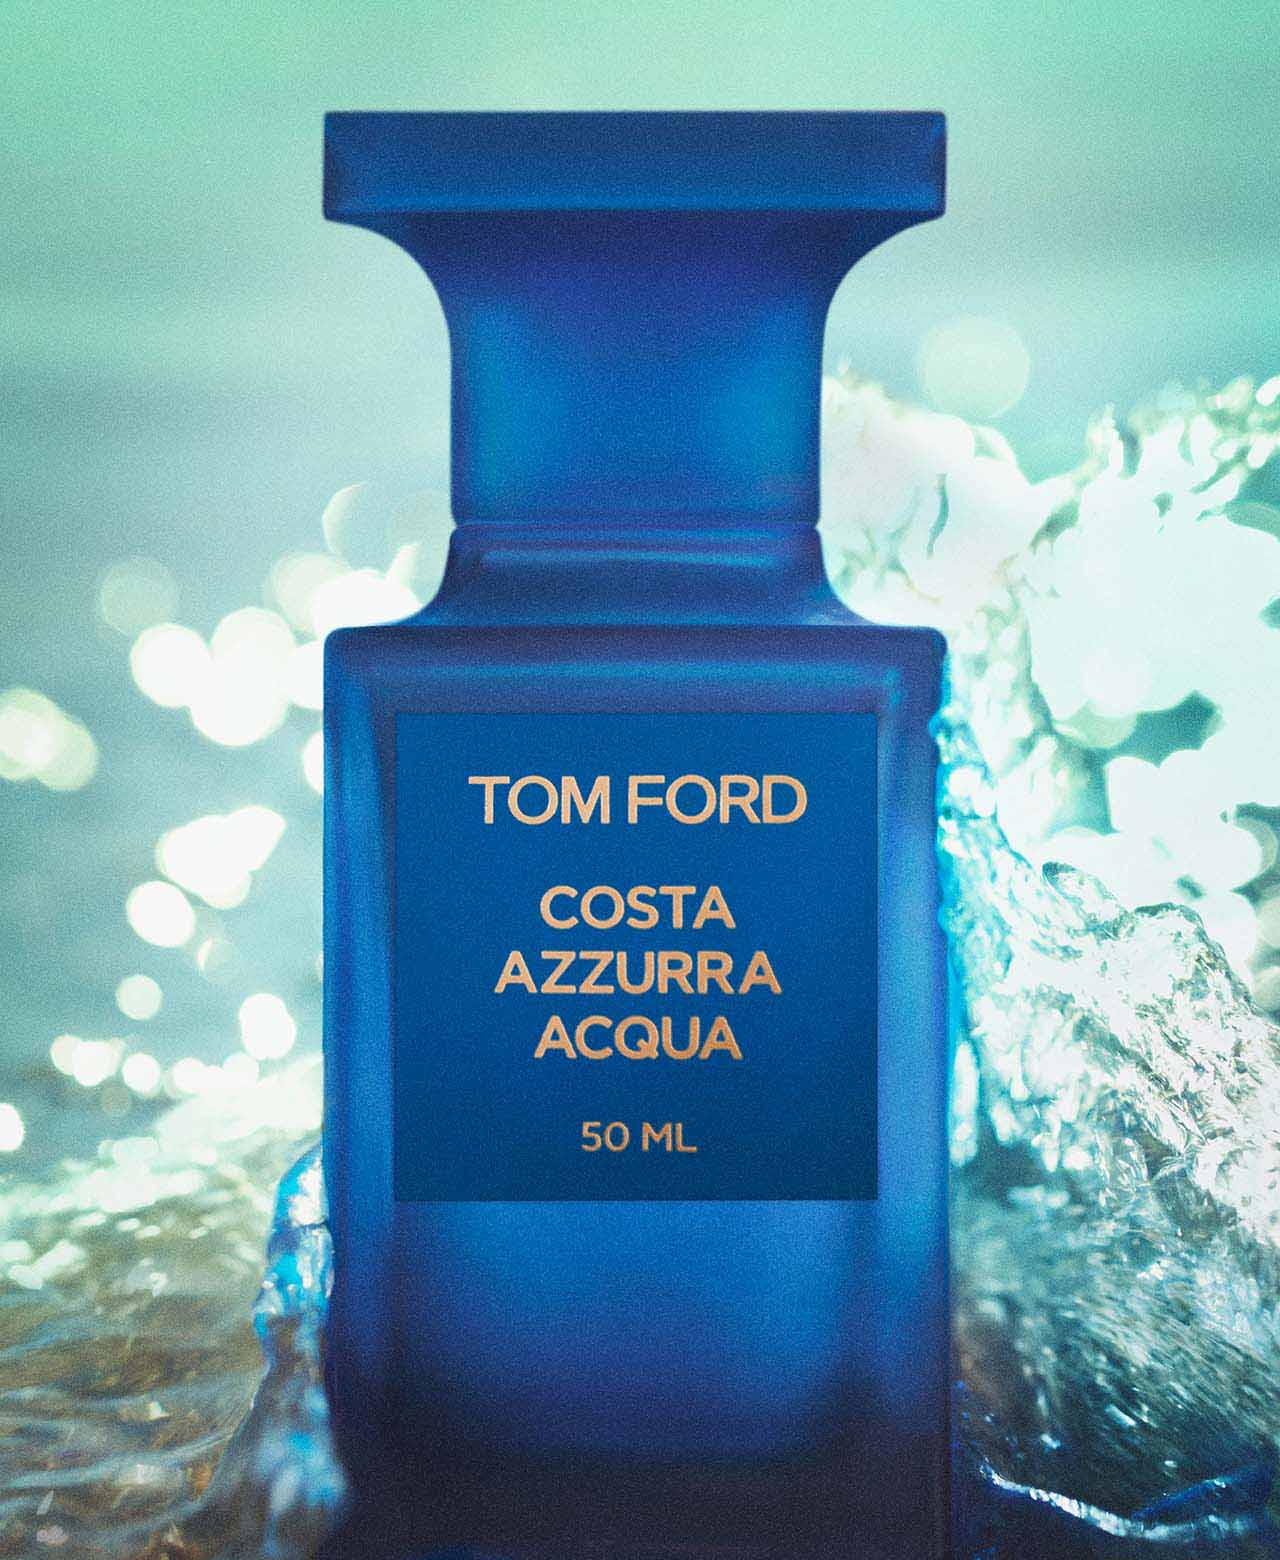 Tom Ford Costa